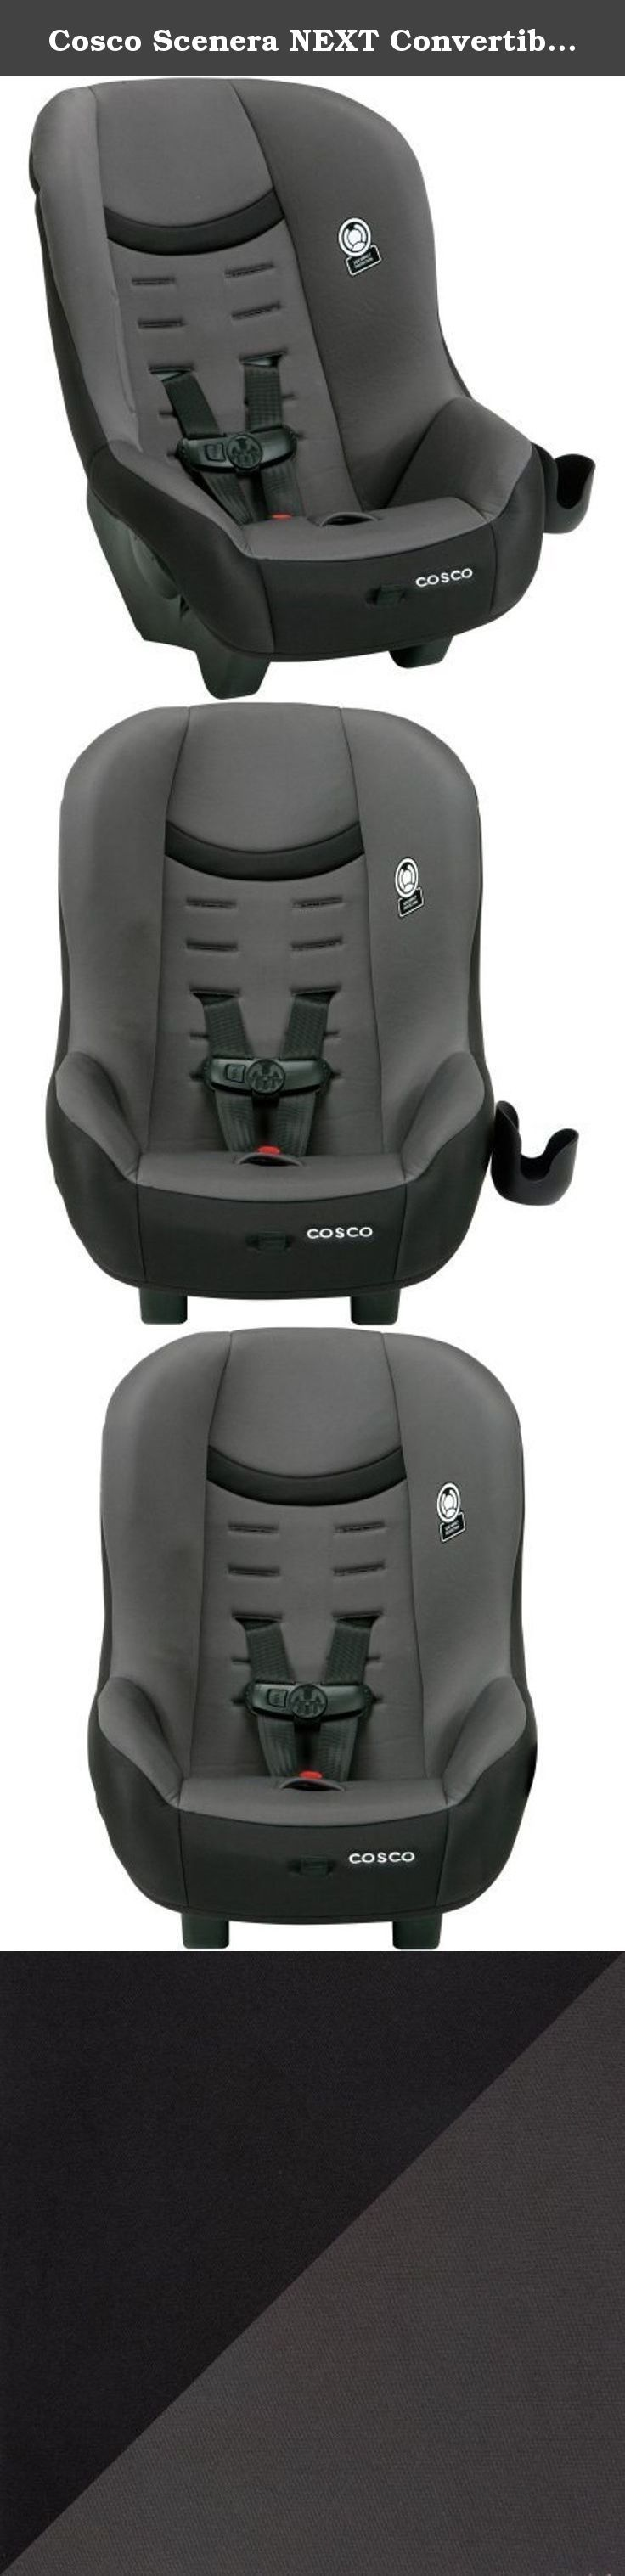 Cosco scenera next convertible car seat moon mist grey the cosco scenera next is simply a smarter car seat designed for families who know what